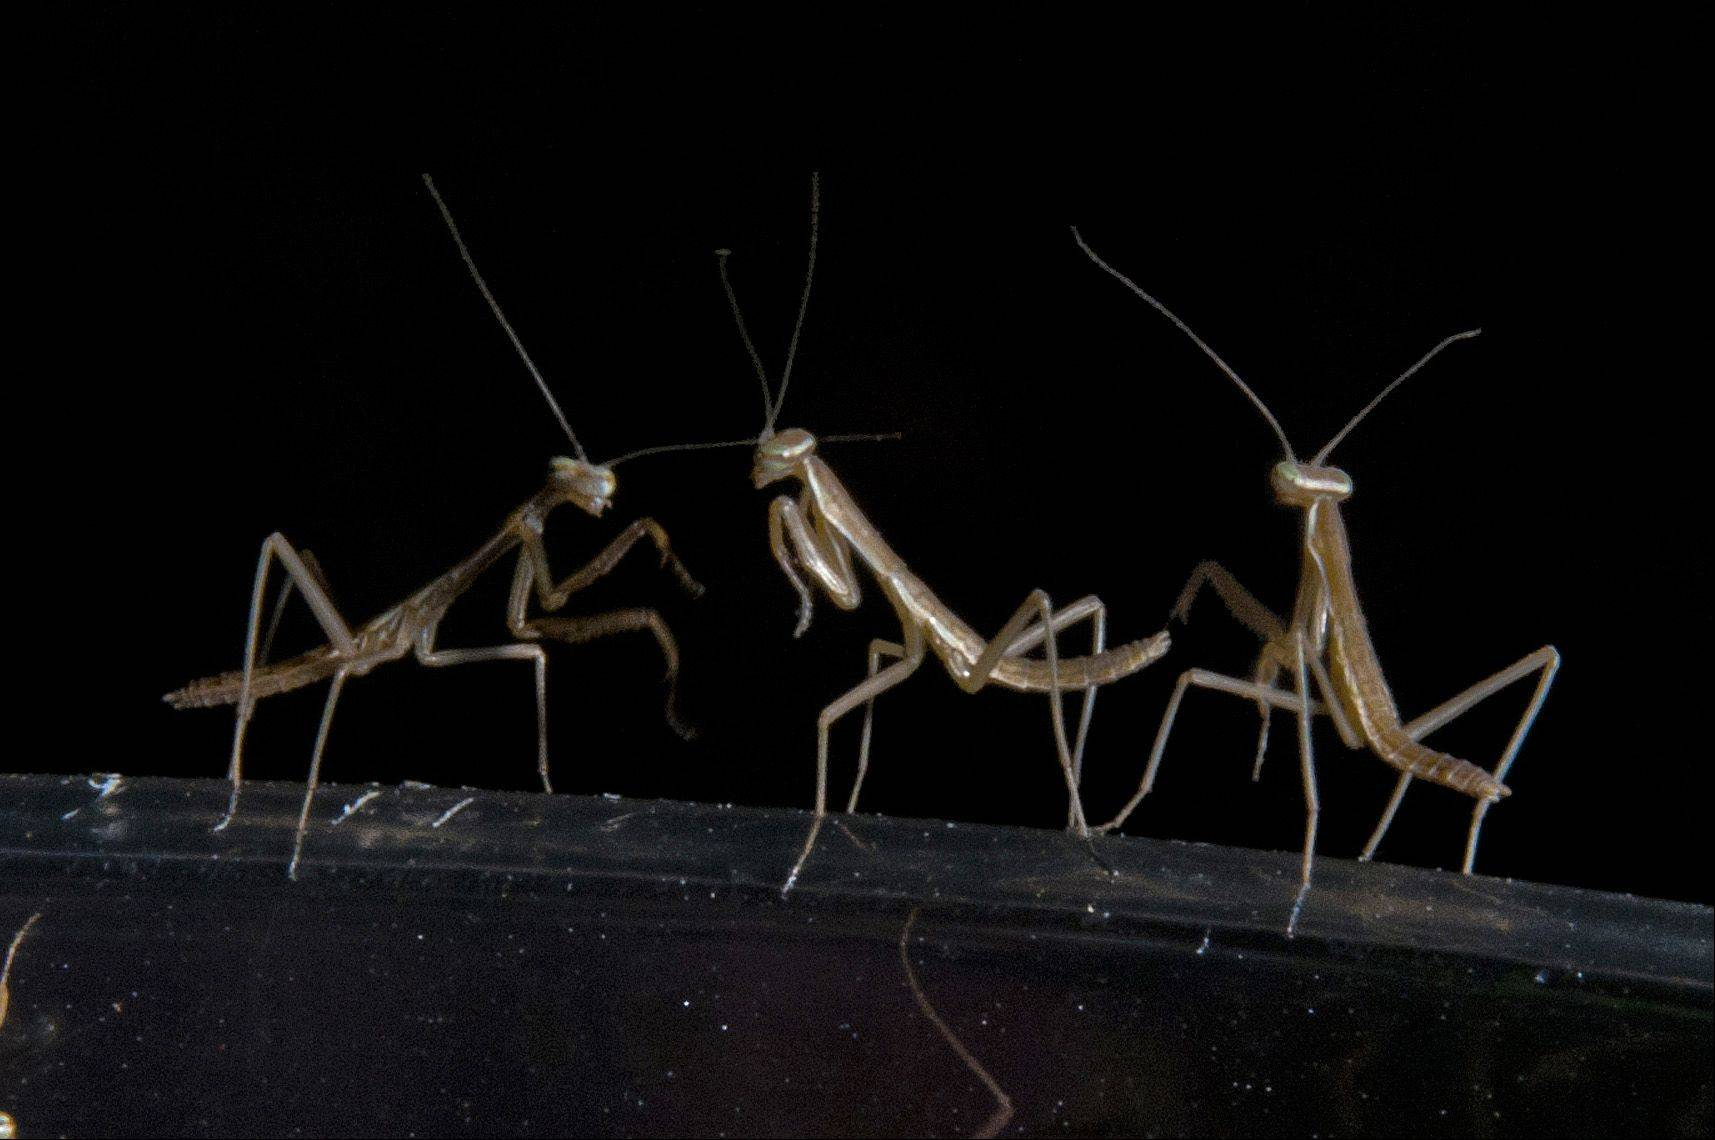 Ken Busse of Wheaton captured this image after releasing hundreds of praying mantises hatched from two cocoons.